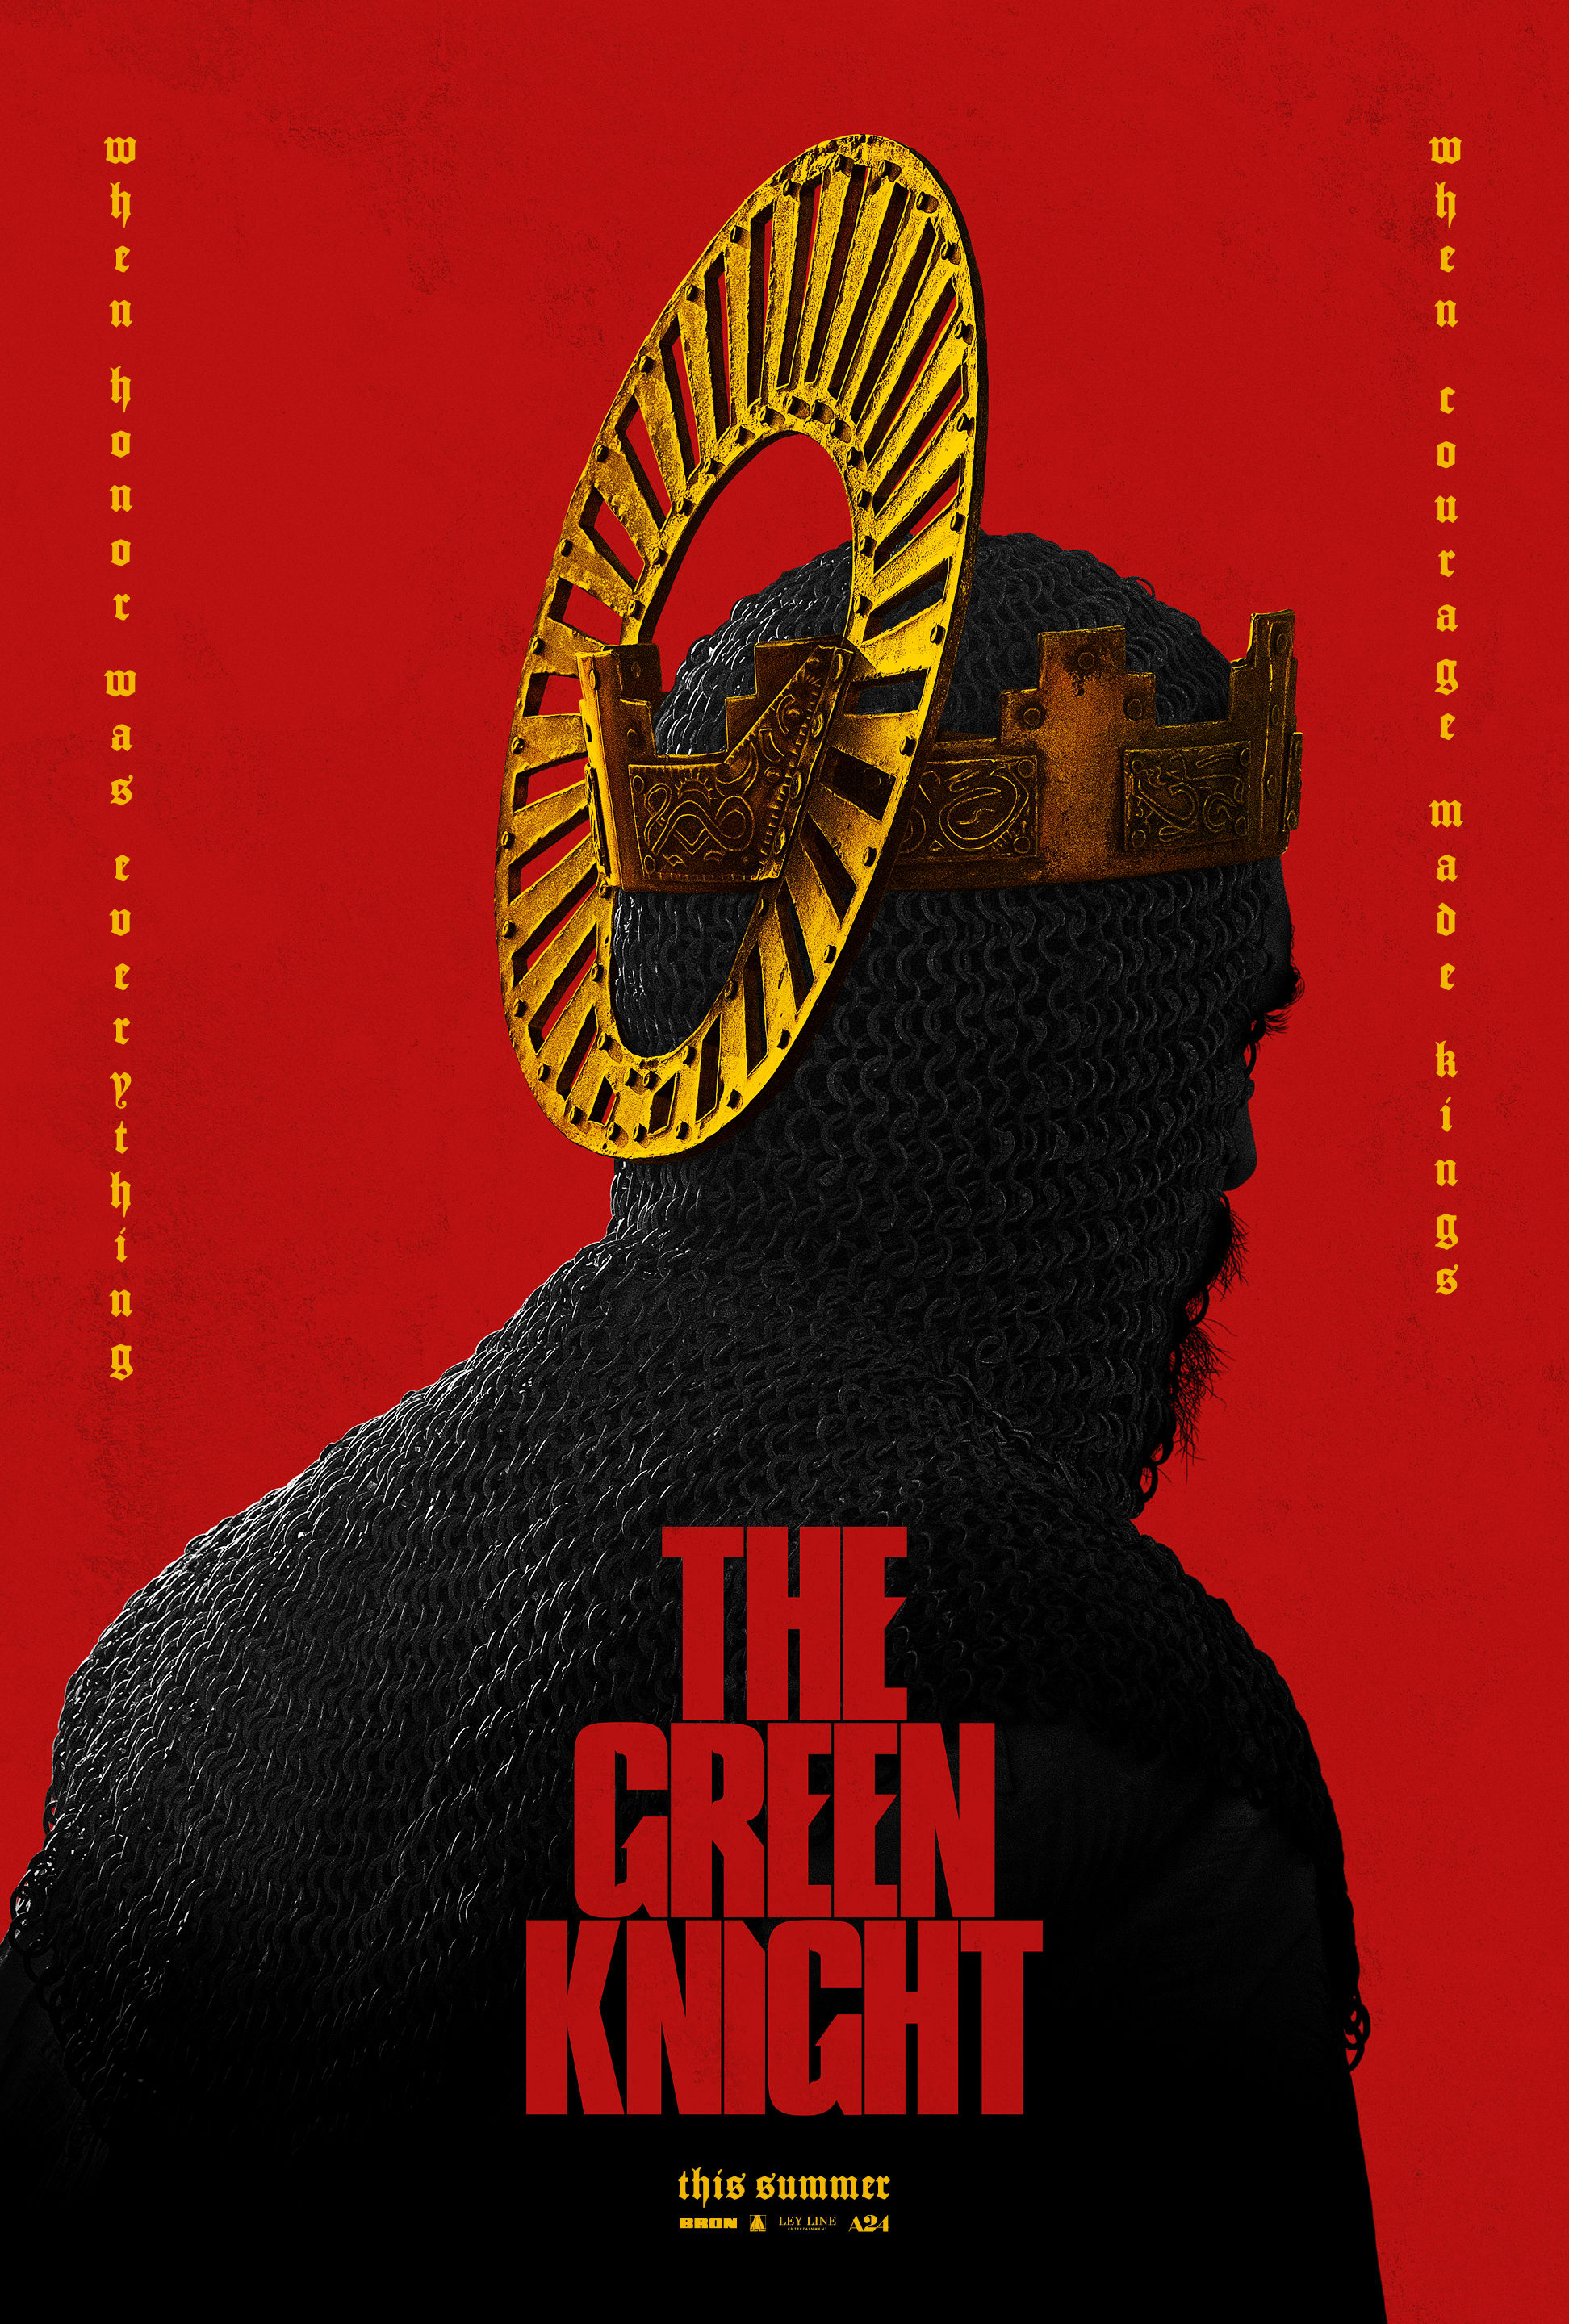 'The Green Knight'